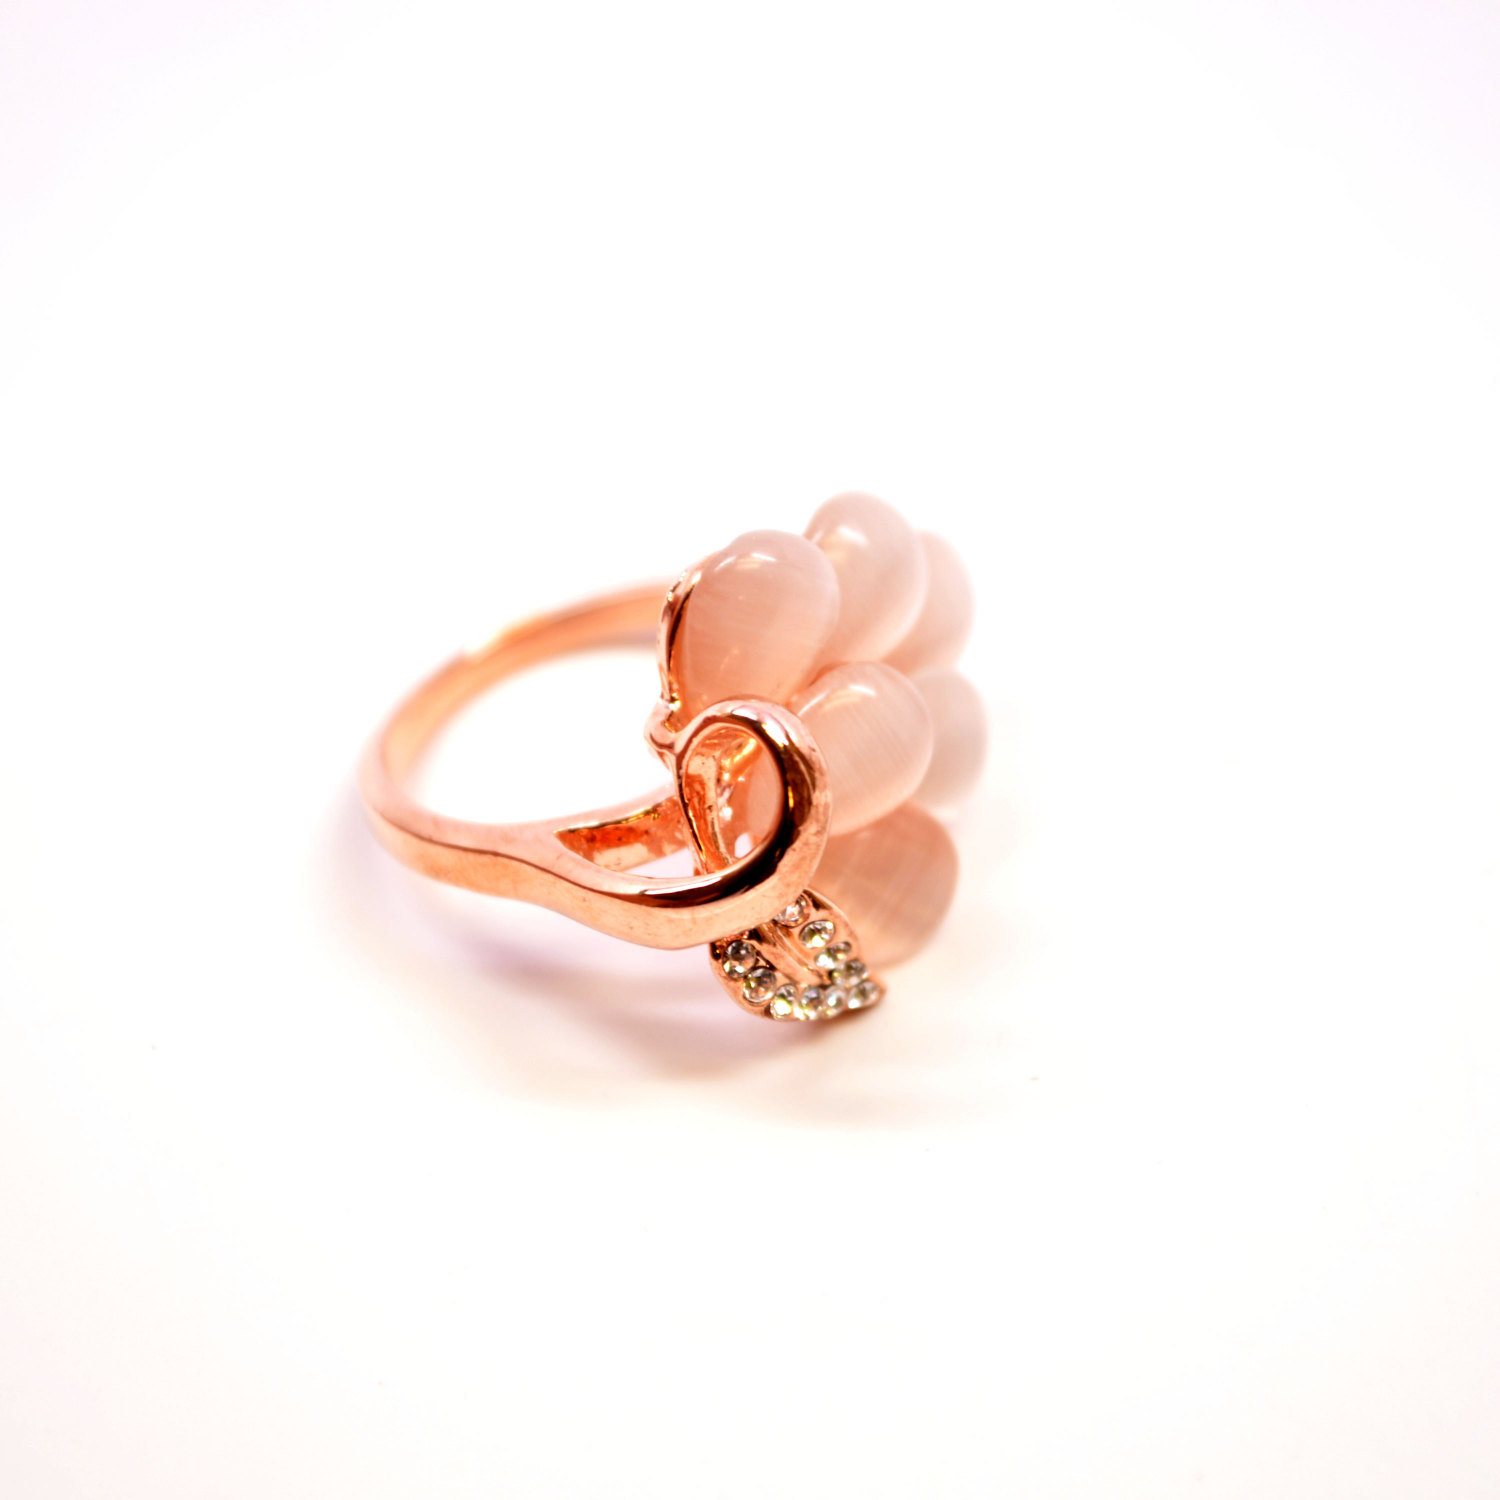 Grape Inspired Fashion Ring With Moonstone And Swarovski Crystal On Rose Gold Pl image 4